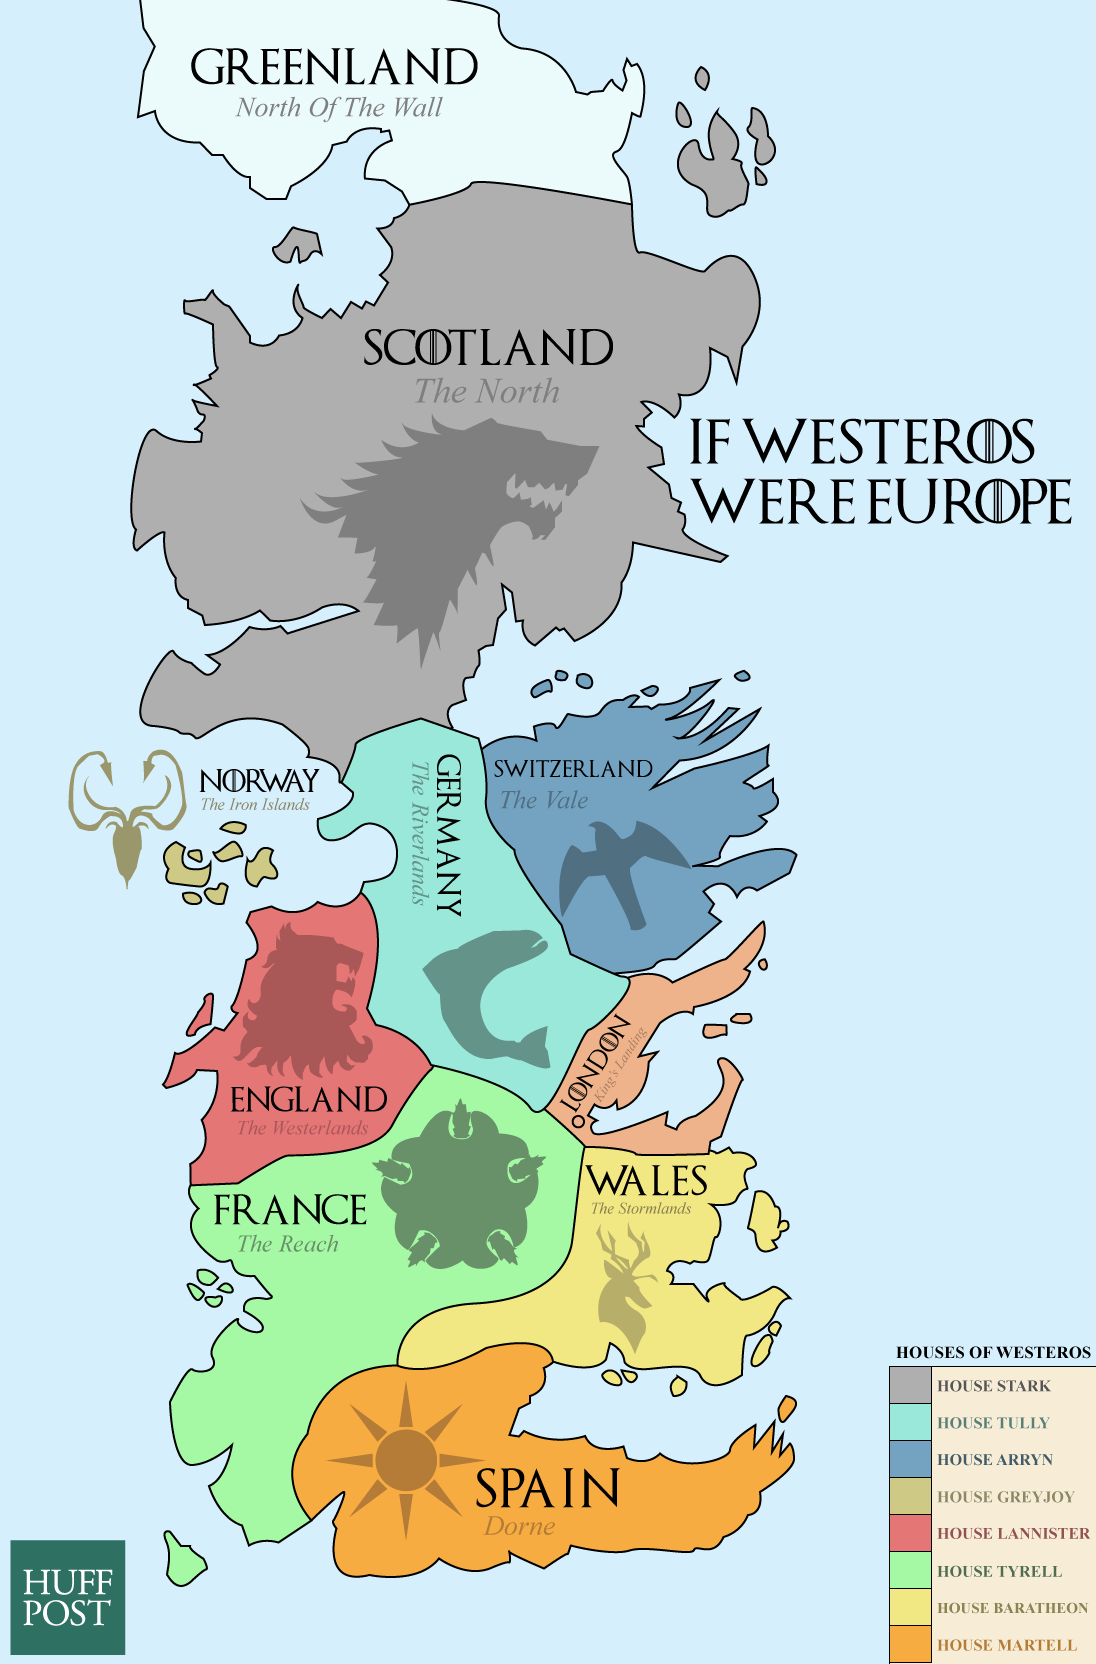 This map shows the real world equivalents of the seven kingdoms this cool game of thrones map shows what it would look like if westeros were europe gumiabroncs Image collections